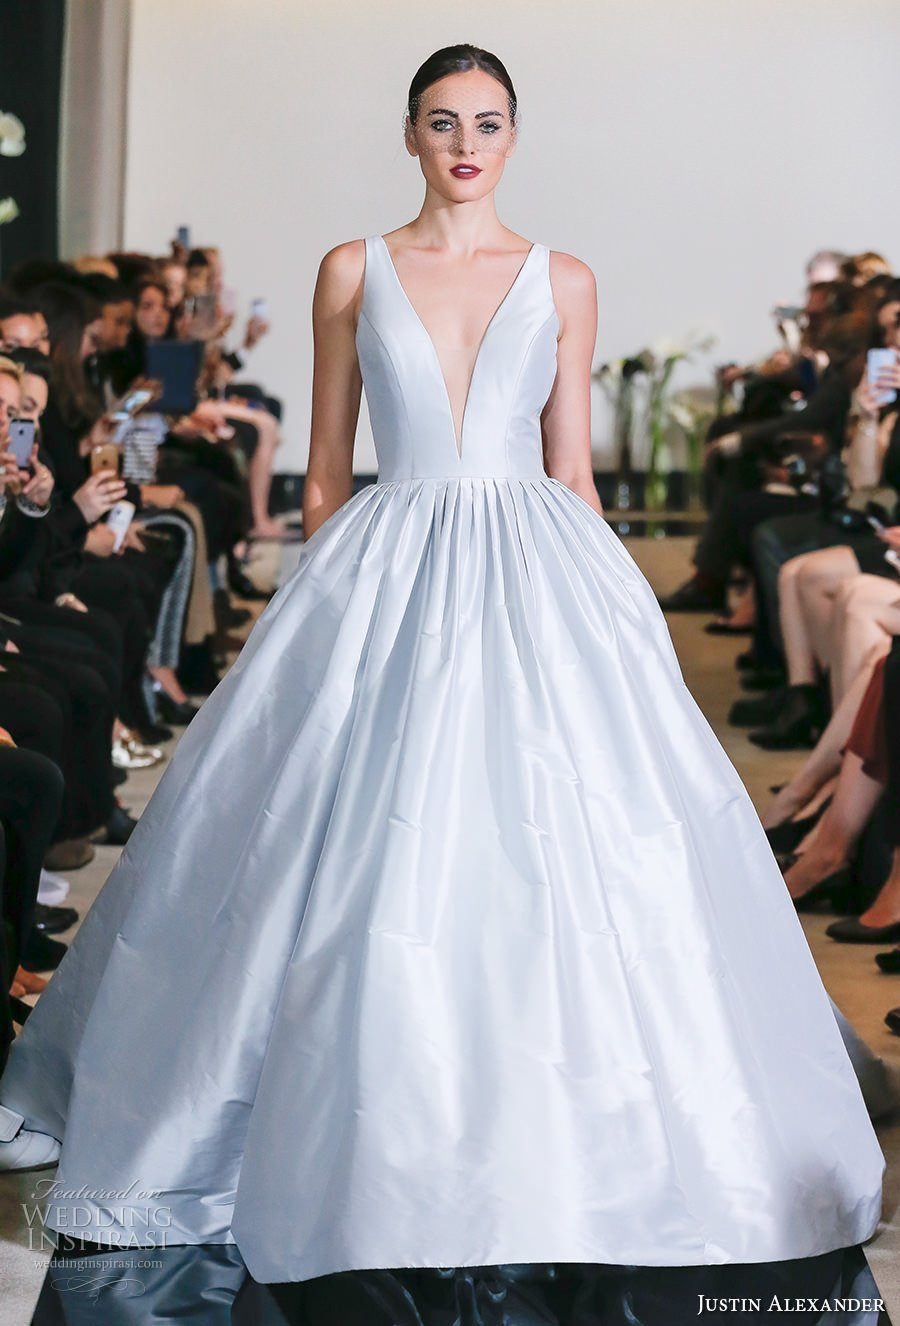 8cfb2aa127 Justin Alexander Spring Wedding Dresses. White satin will still be the  wedding dress trend in 2018. Image Source  Pinterest